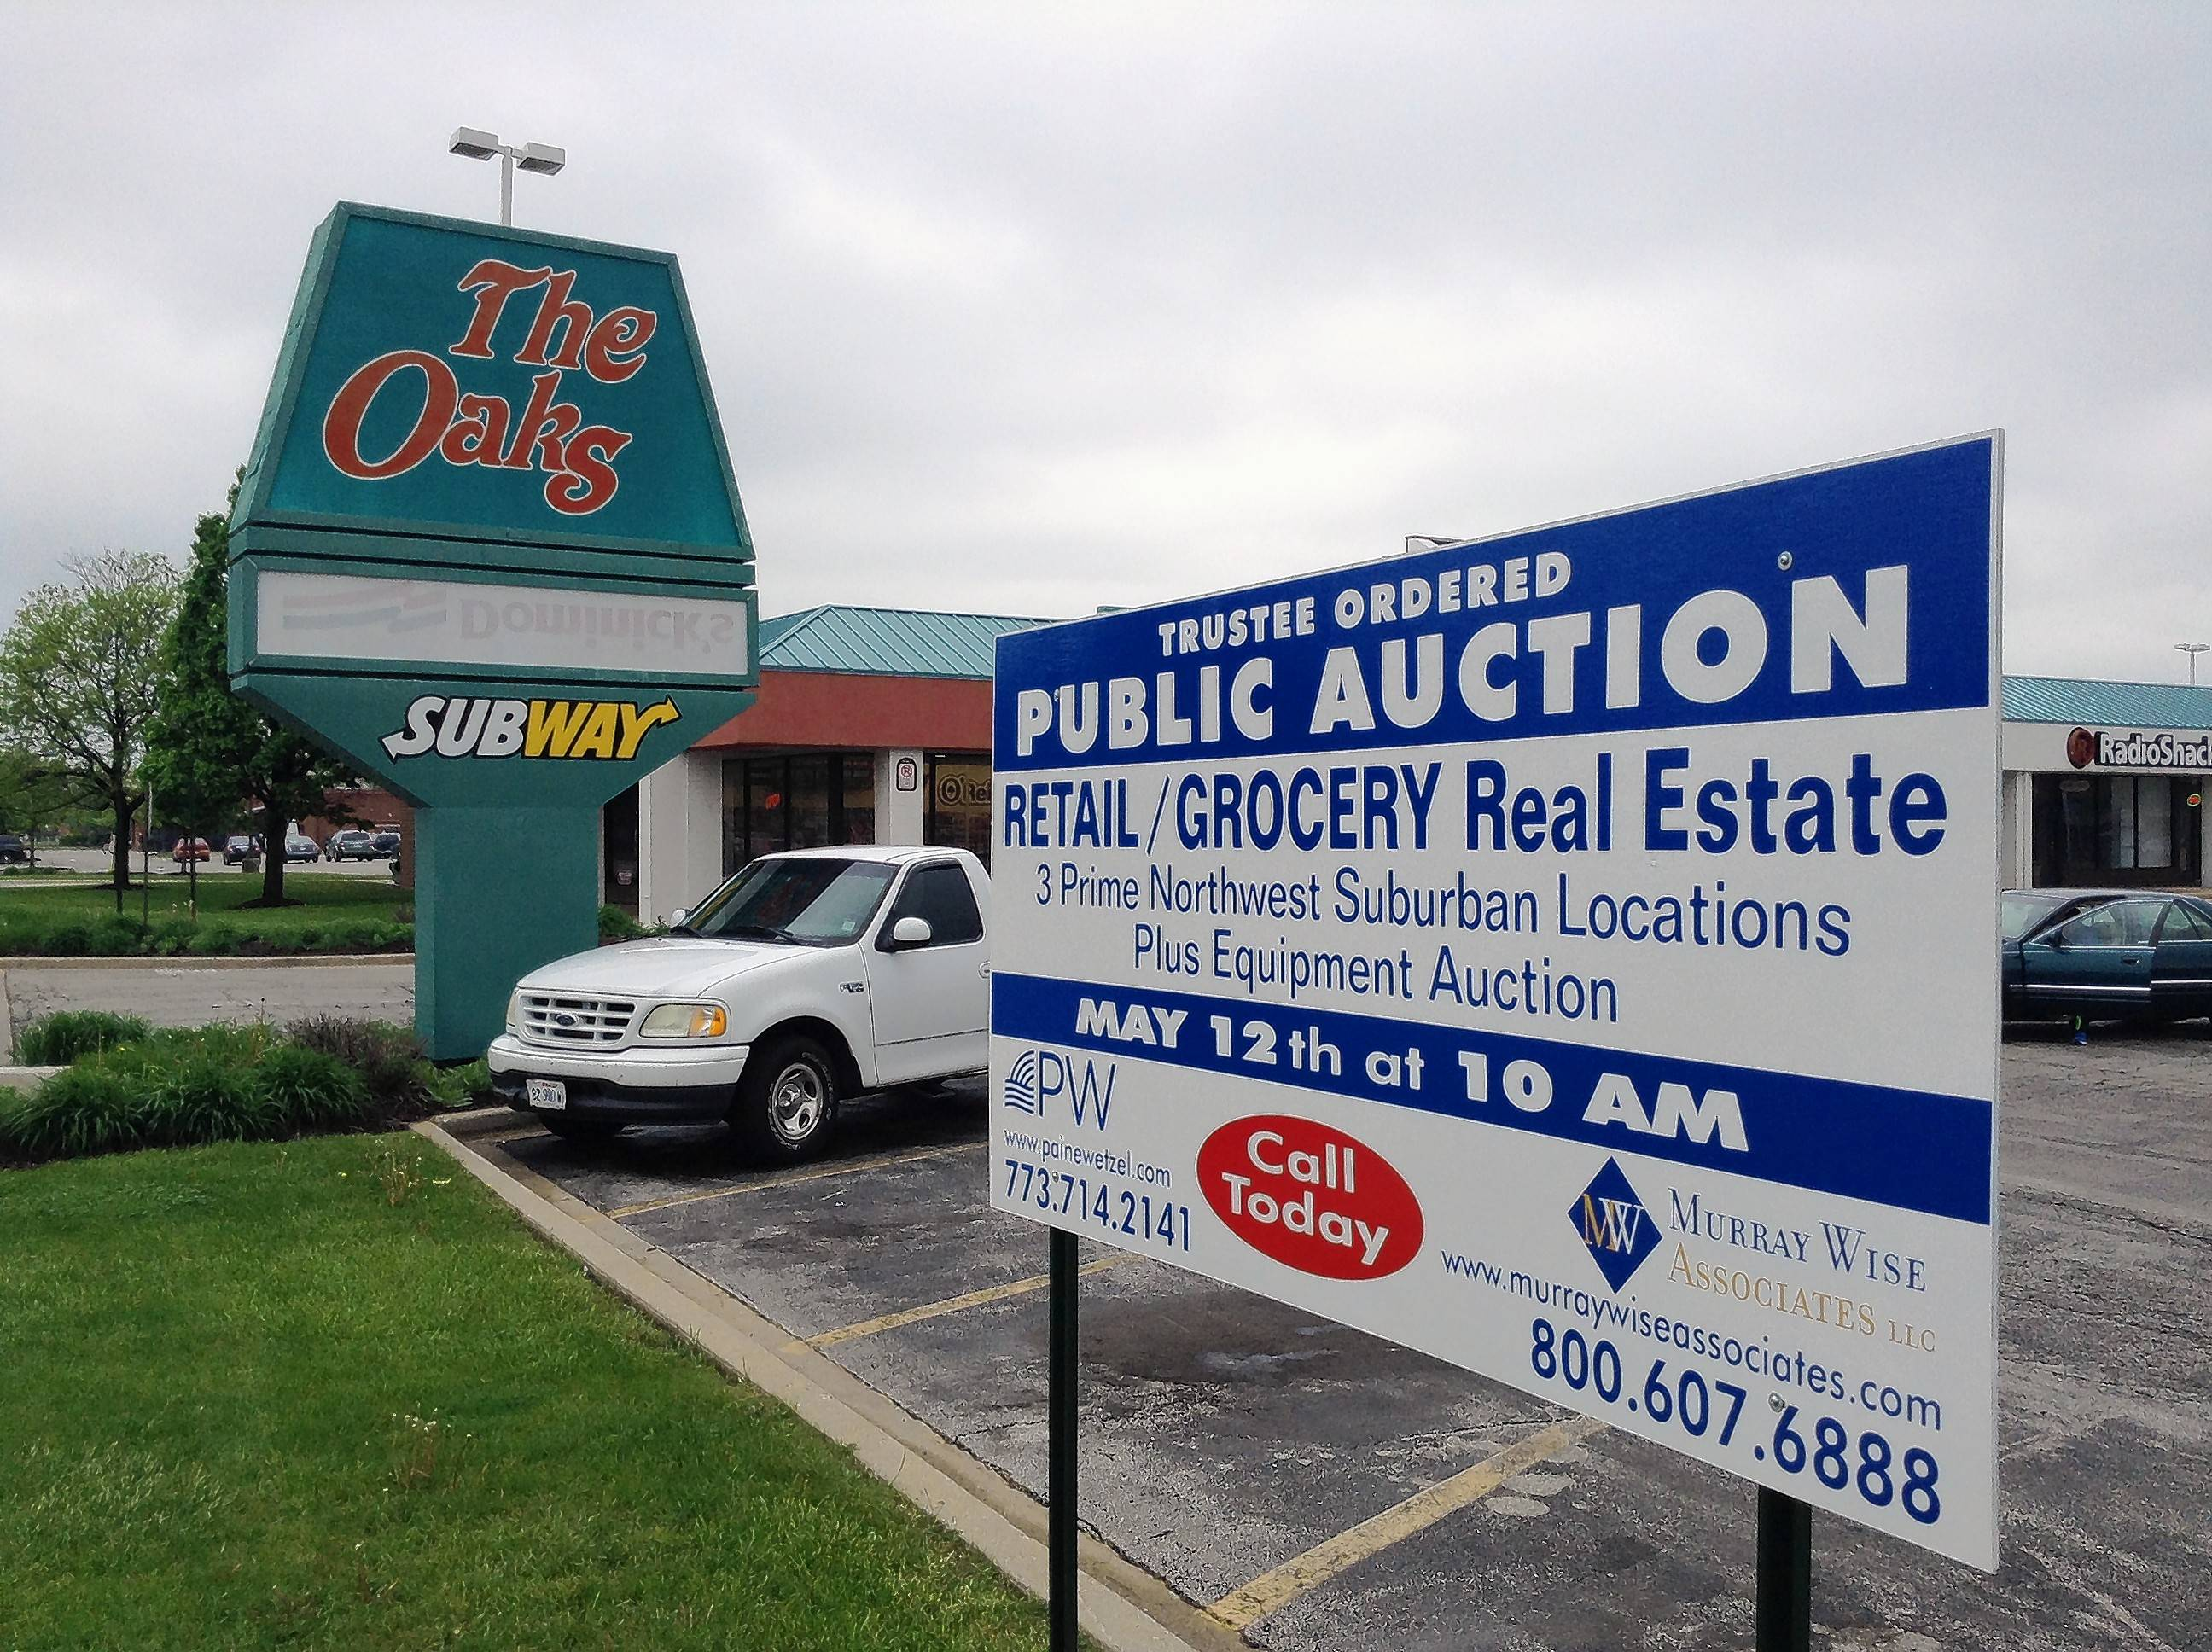 The Oaks Shopping Center at Oakton and Lee Streets in Des Plaines was auctioned in May 2016 with other properties owned by Joe Caputo & Sons. The winning bidder, Butera/Piggly Wiggly, put up $32 million.